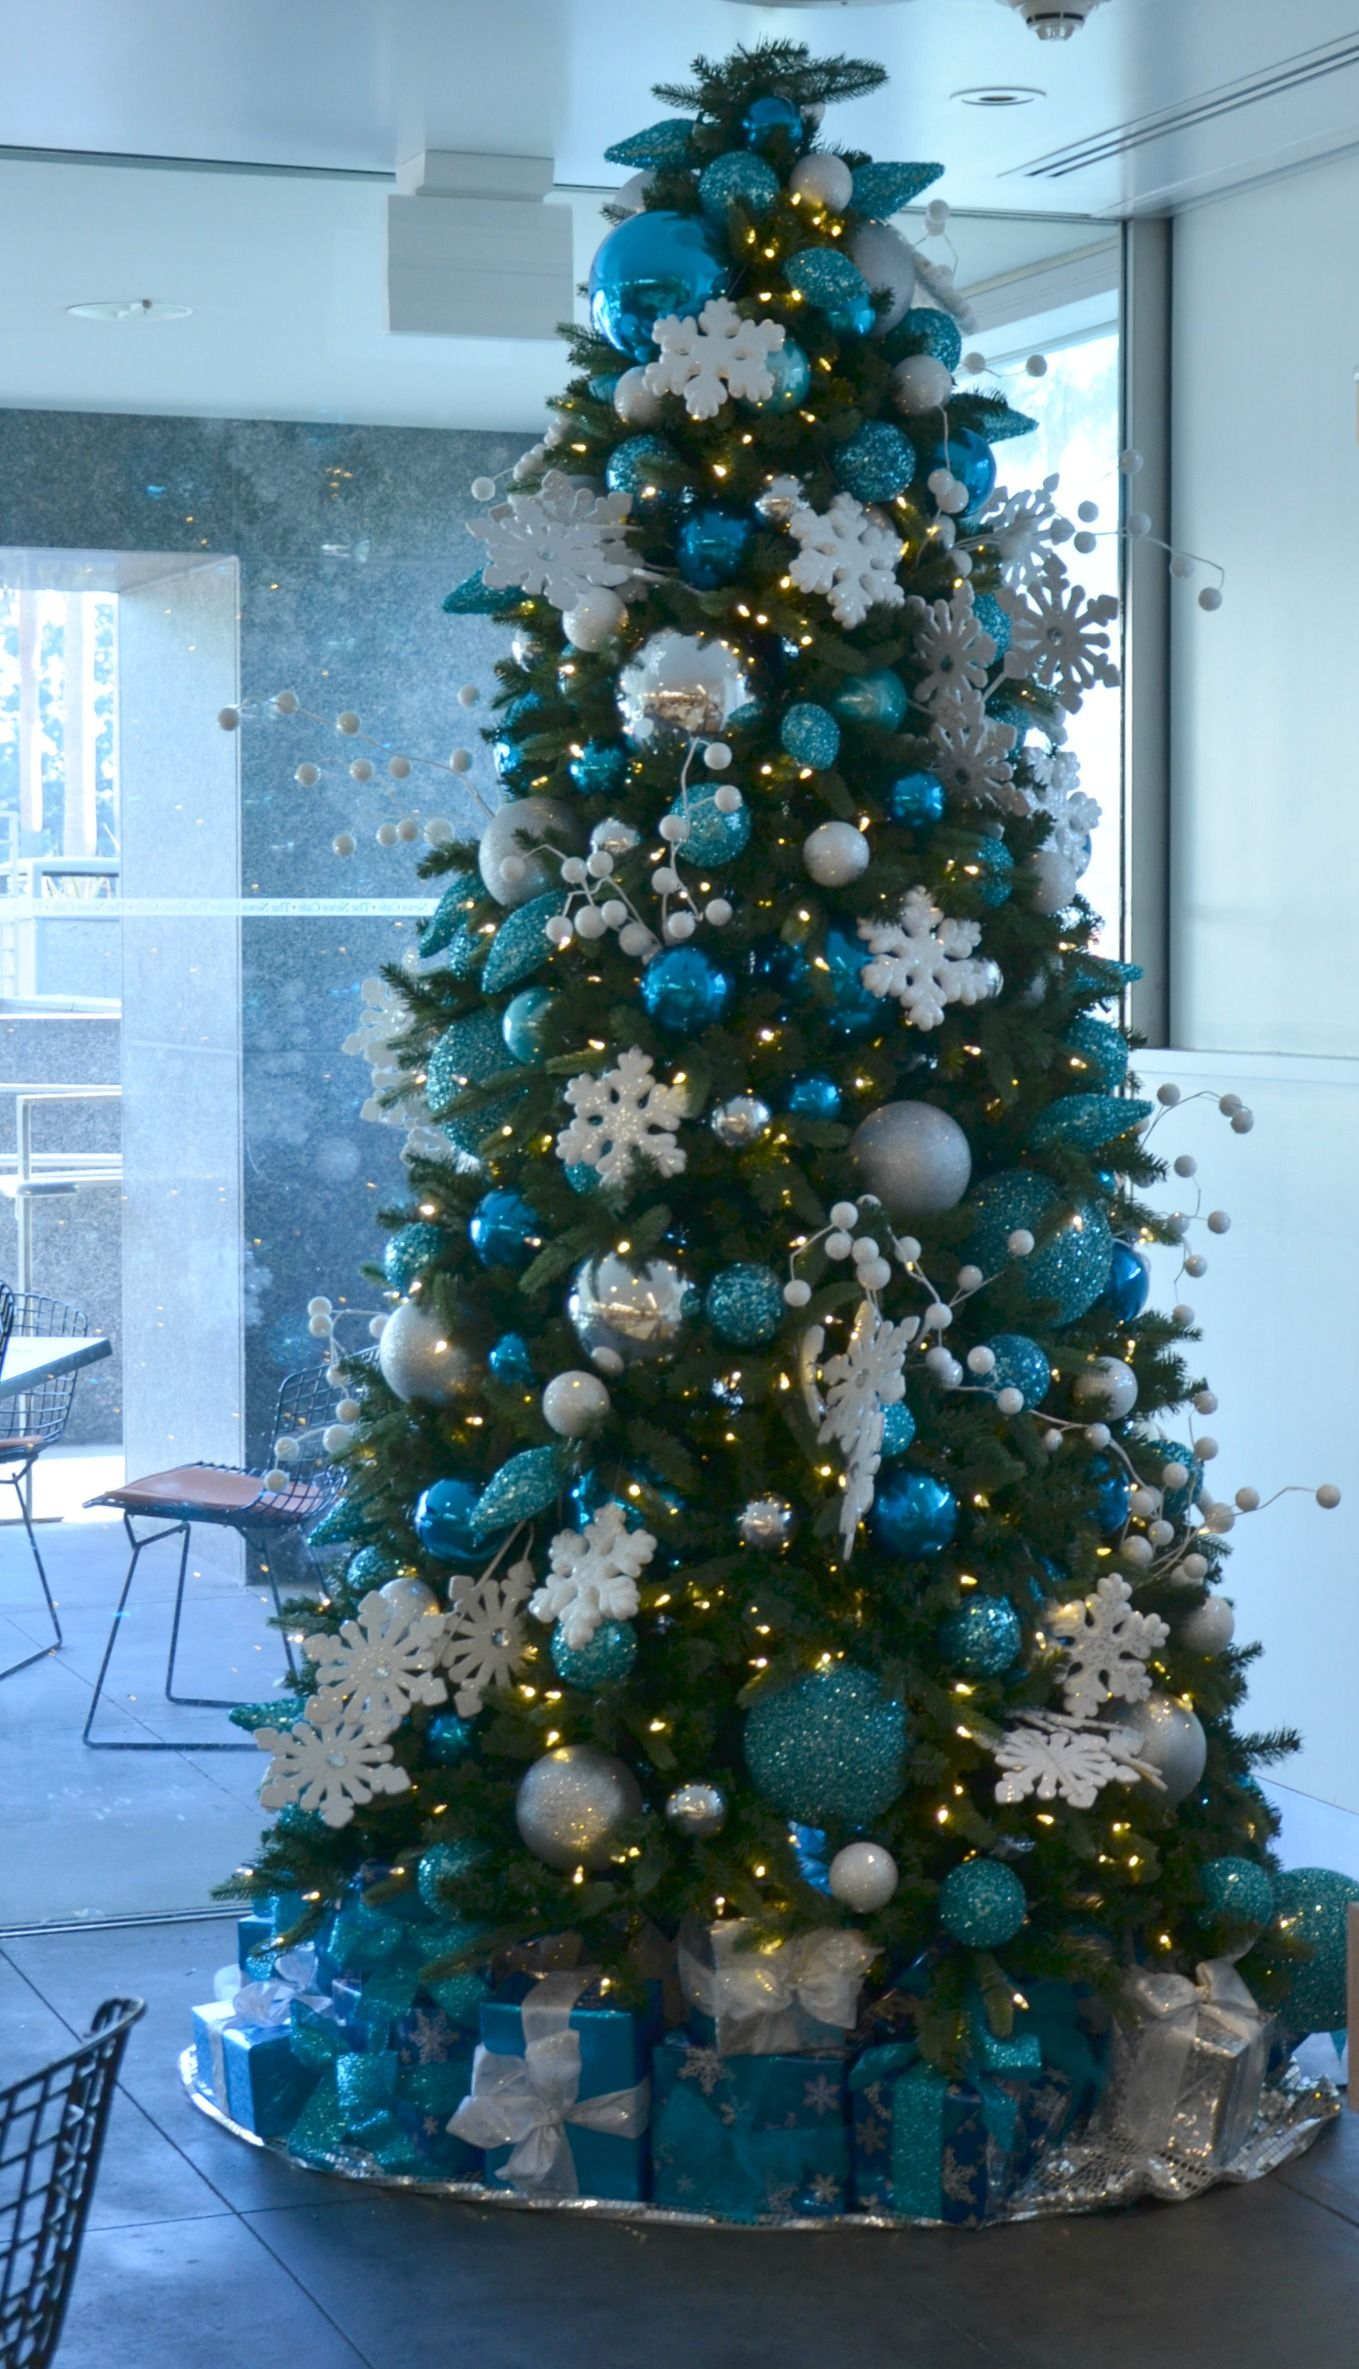 blue and white snowflake decorated christmas tree rental commercial christmas decorator christmas tree rentals christmas decoration rentals - Rent A Decorated Christmas Tree